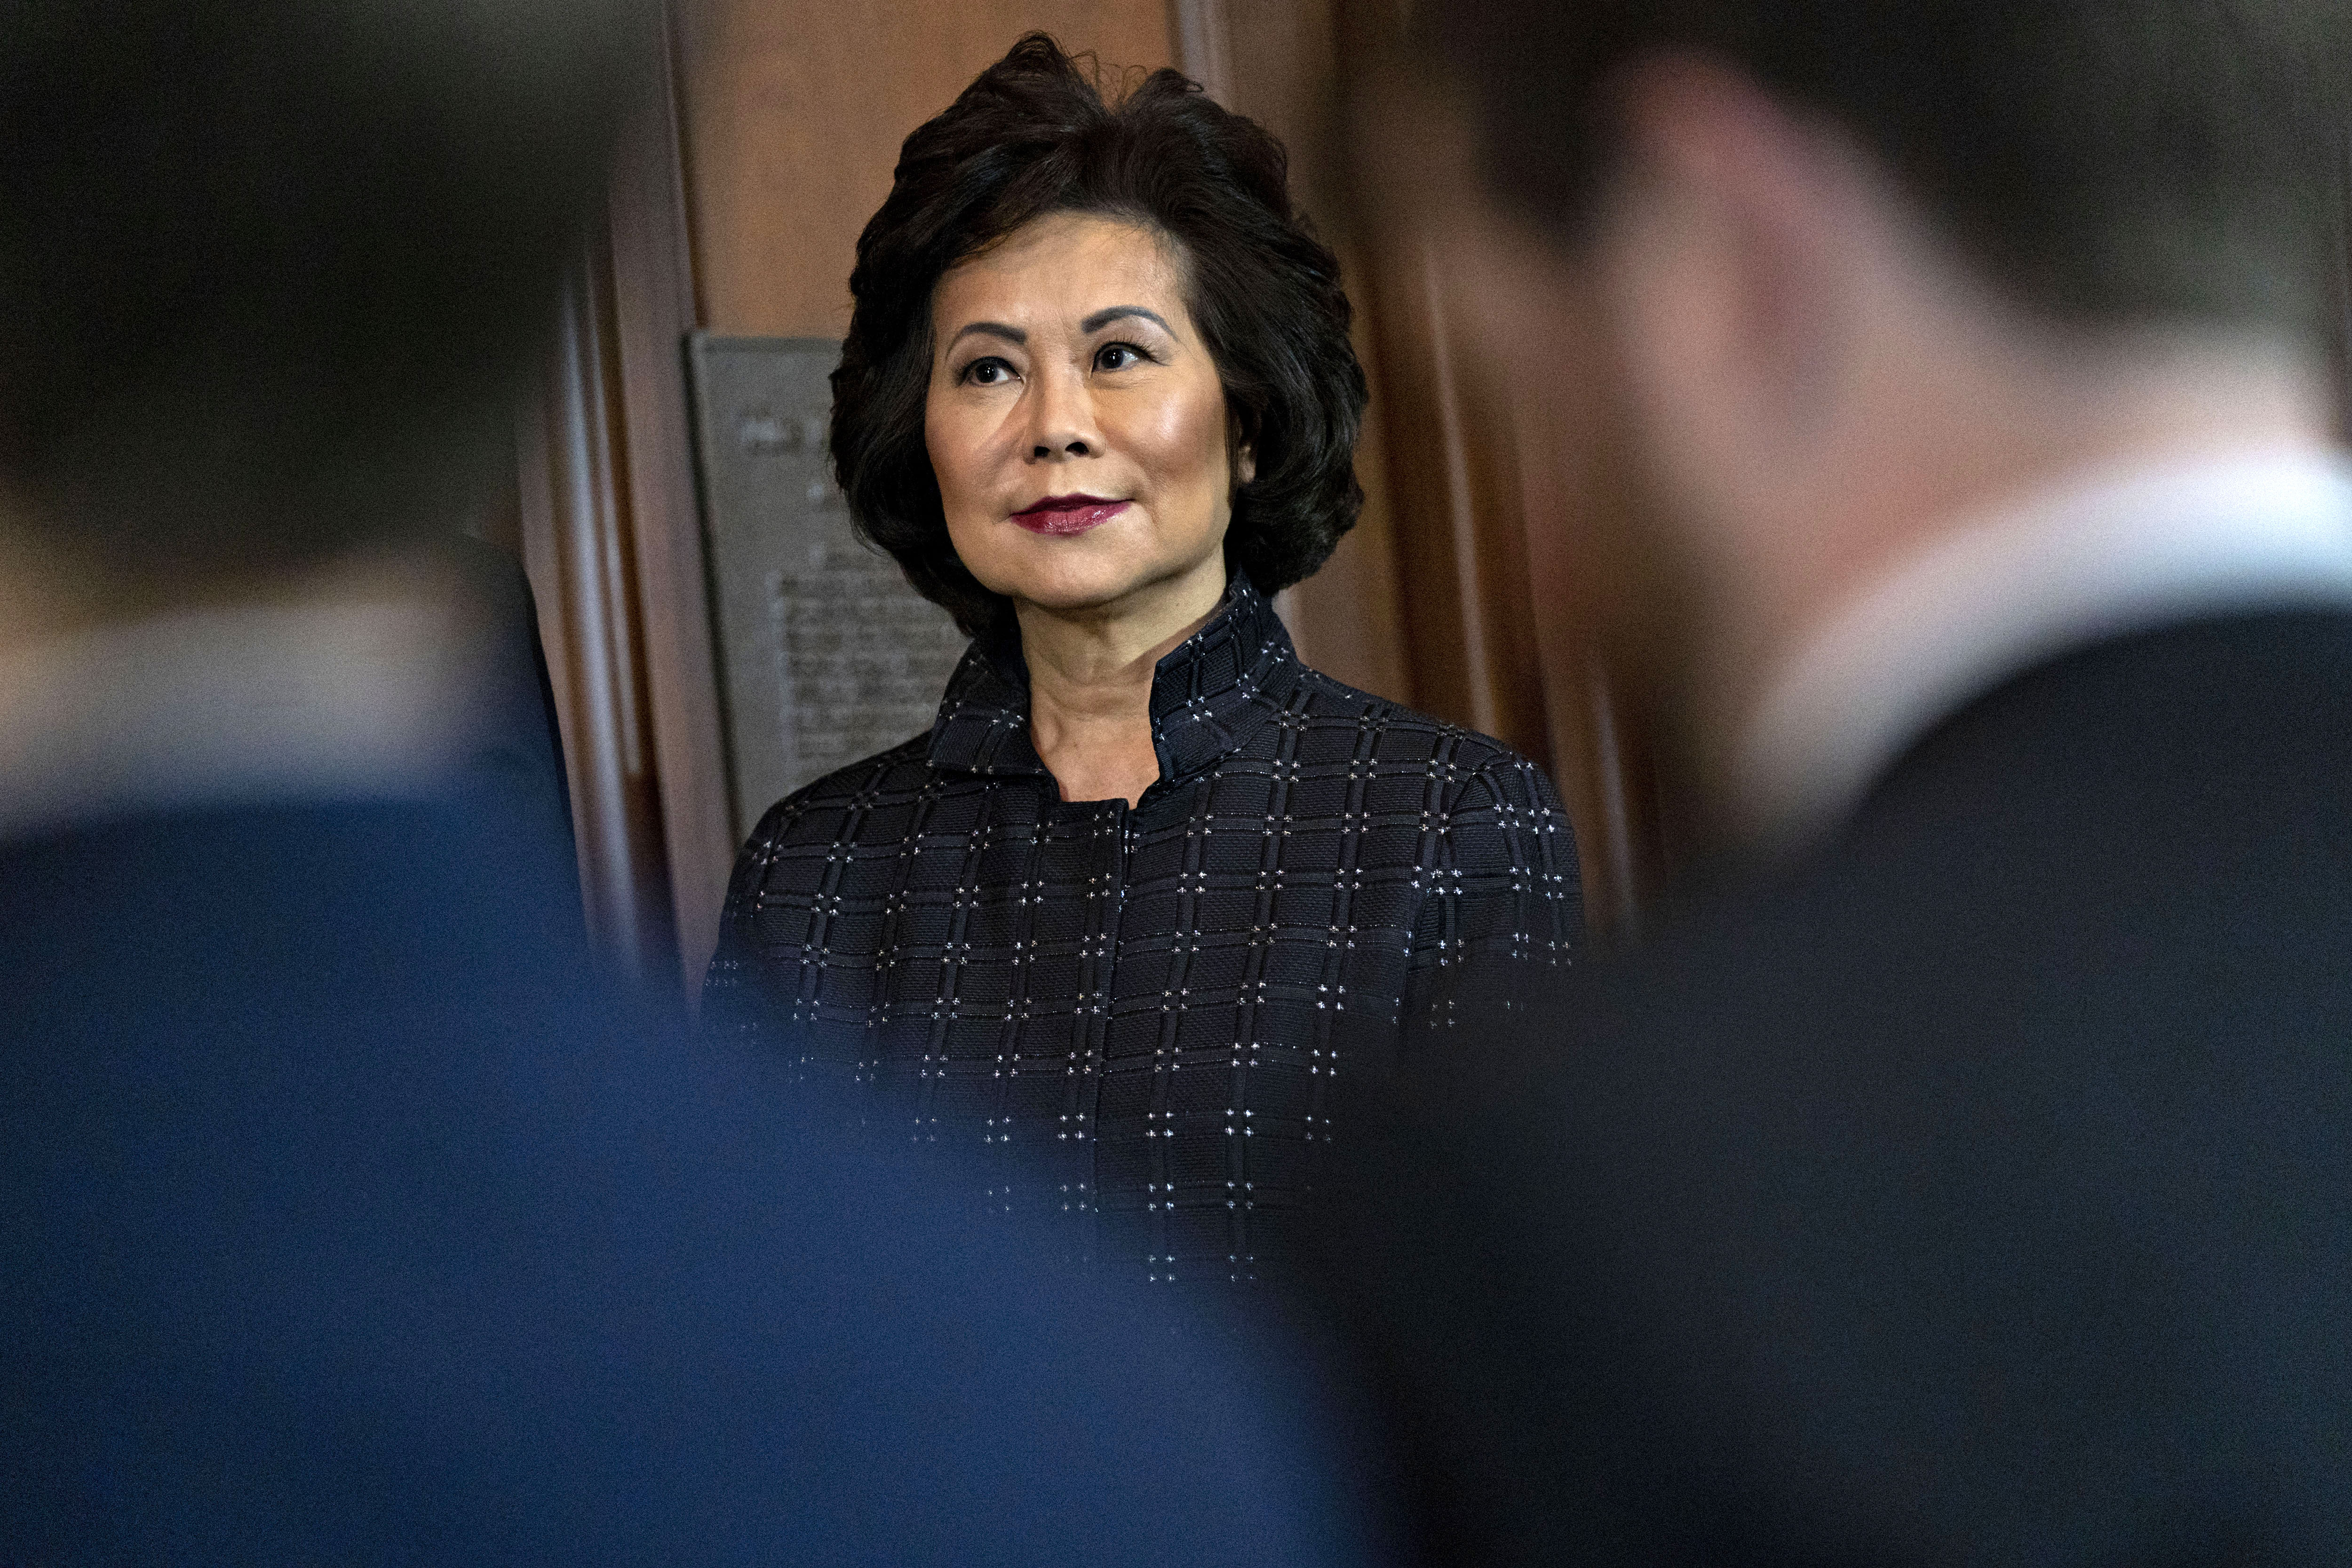 Elaine Chao, secretary of transportation, listens during a policy announcement in Washington, DC, in September 2019.